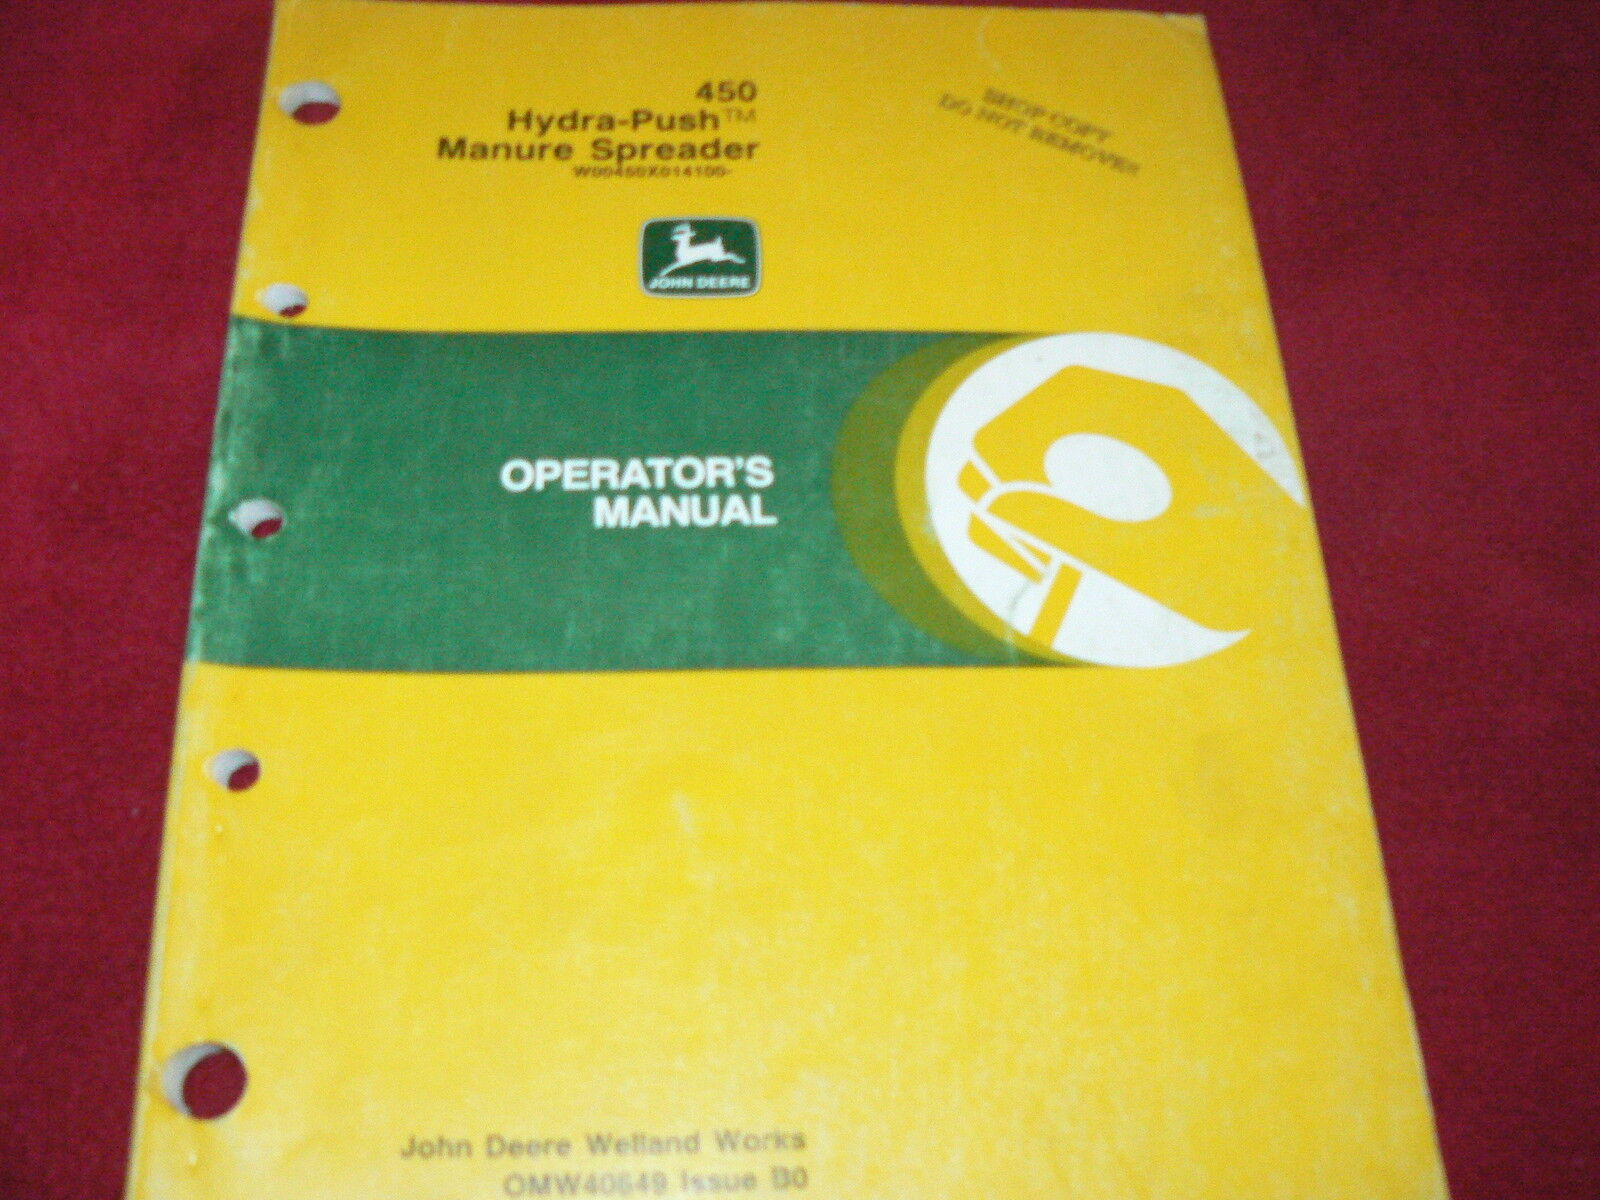 John Deere 450 Hydra Push Manure Spreader Operator's Manual 1 of 1Only 1  available ...